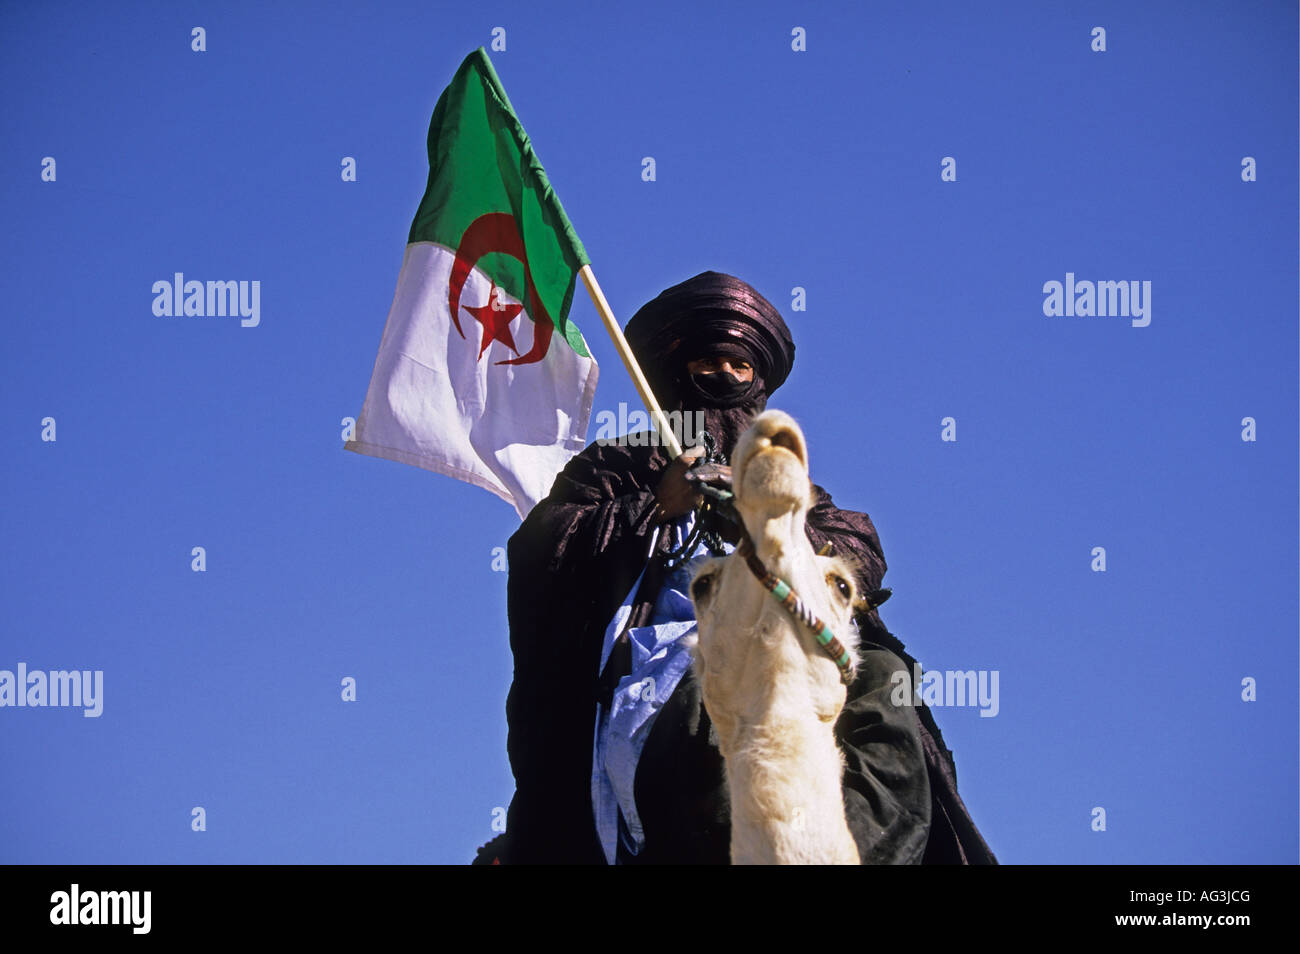 Algeria Tamanrasset Man of Tuareg tribe sitting on camel and holding flag during the TAFSIT or Spring festival - Stock Image